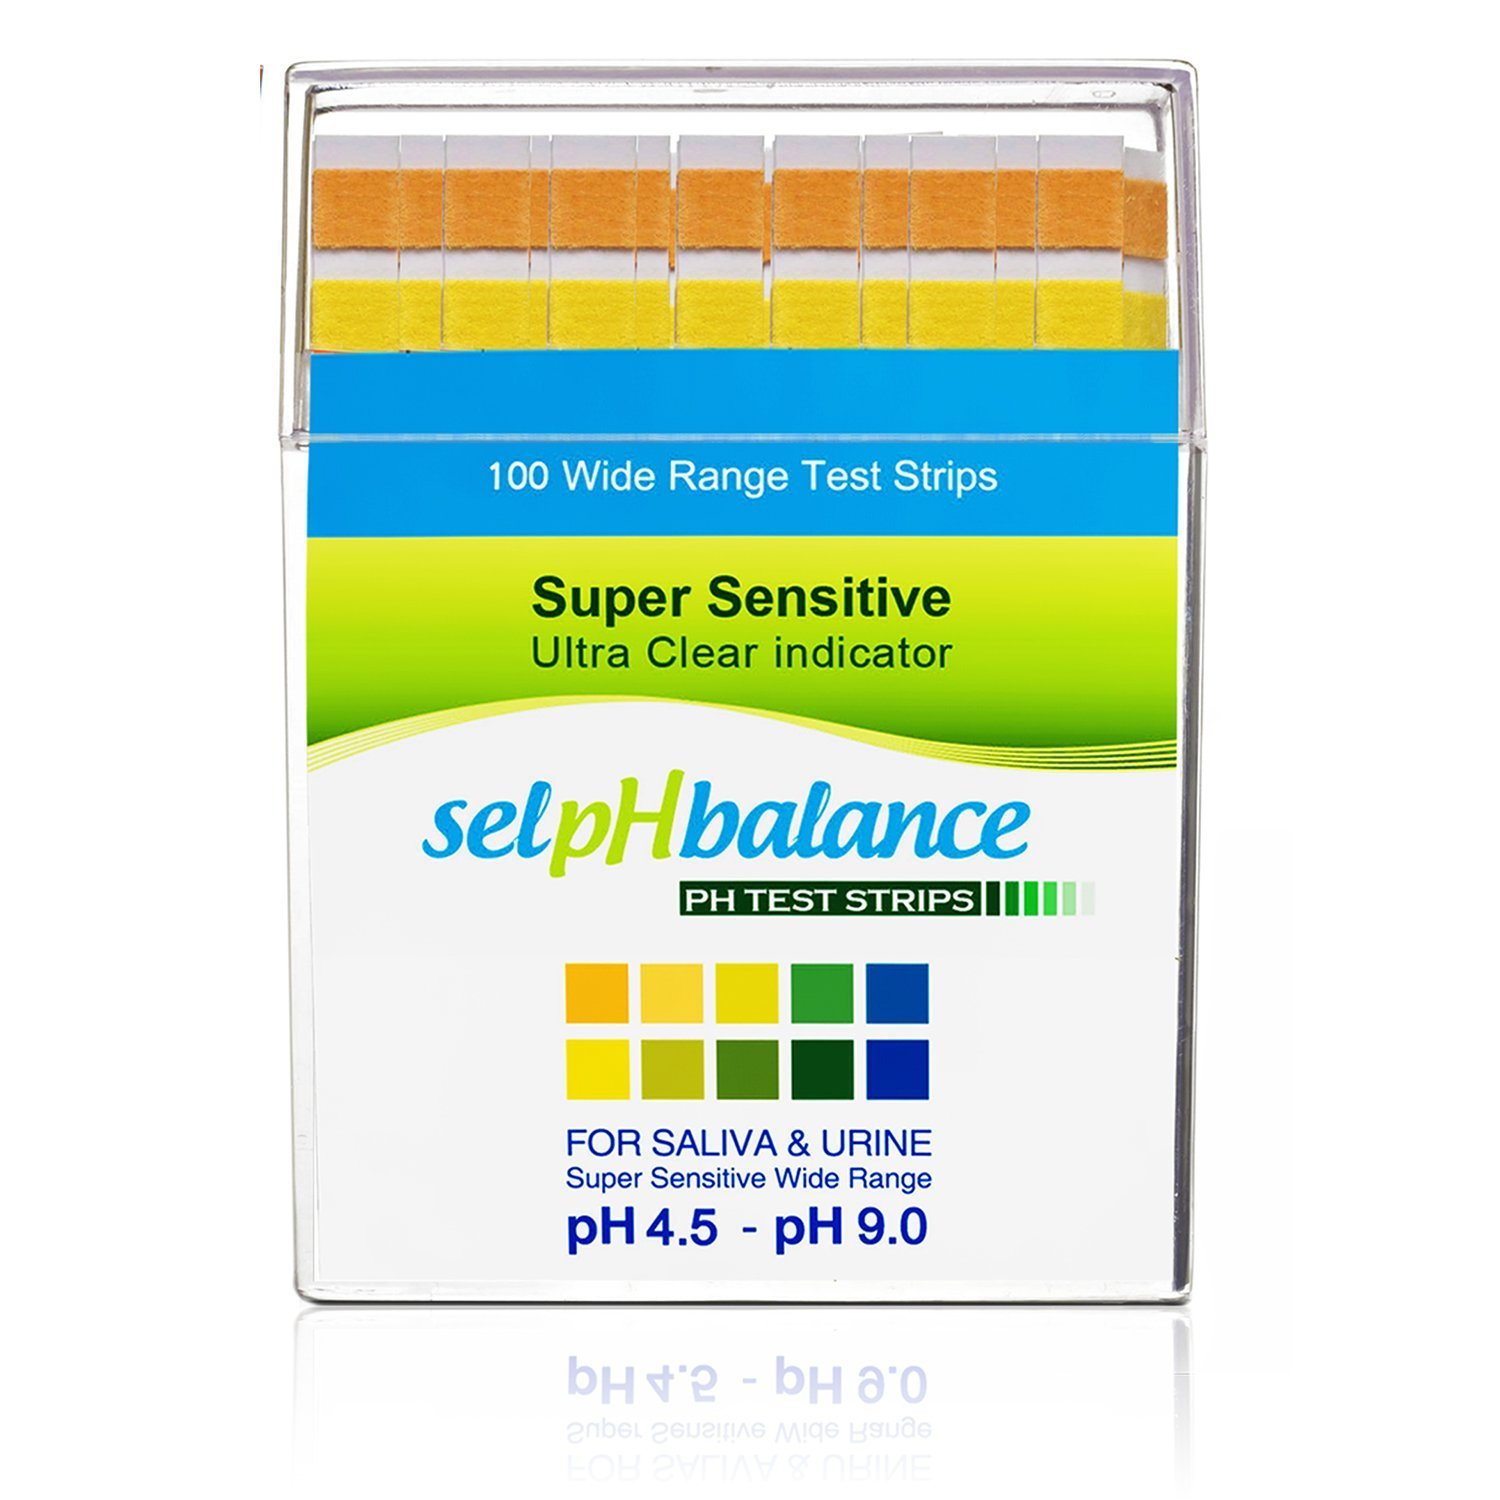 pH Test Strips- pH Scale 4.5-9, Track and Monitor Your Healthy Alkaline Diet By Using Saliva & Urine. Also, Test Quality for Drinking Water & All Liquids. Results in Seconds For pH Balance. 100ct